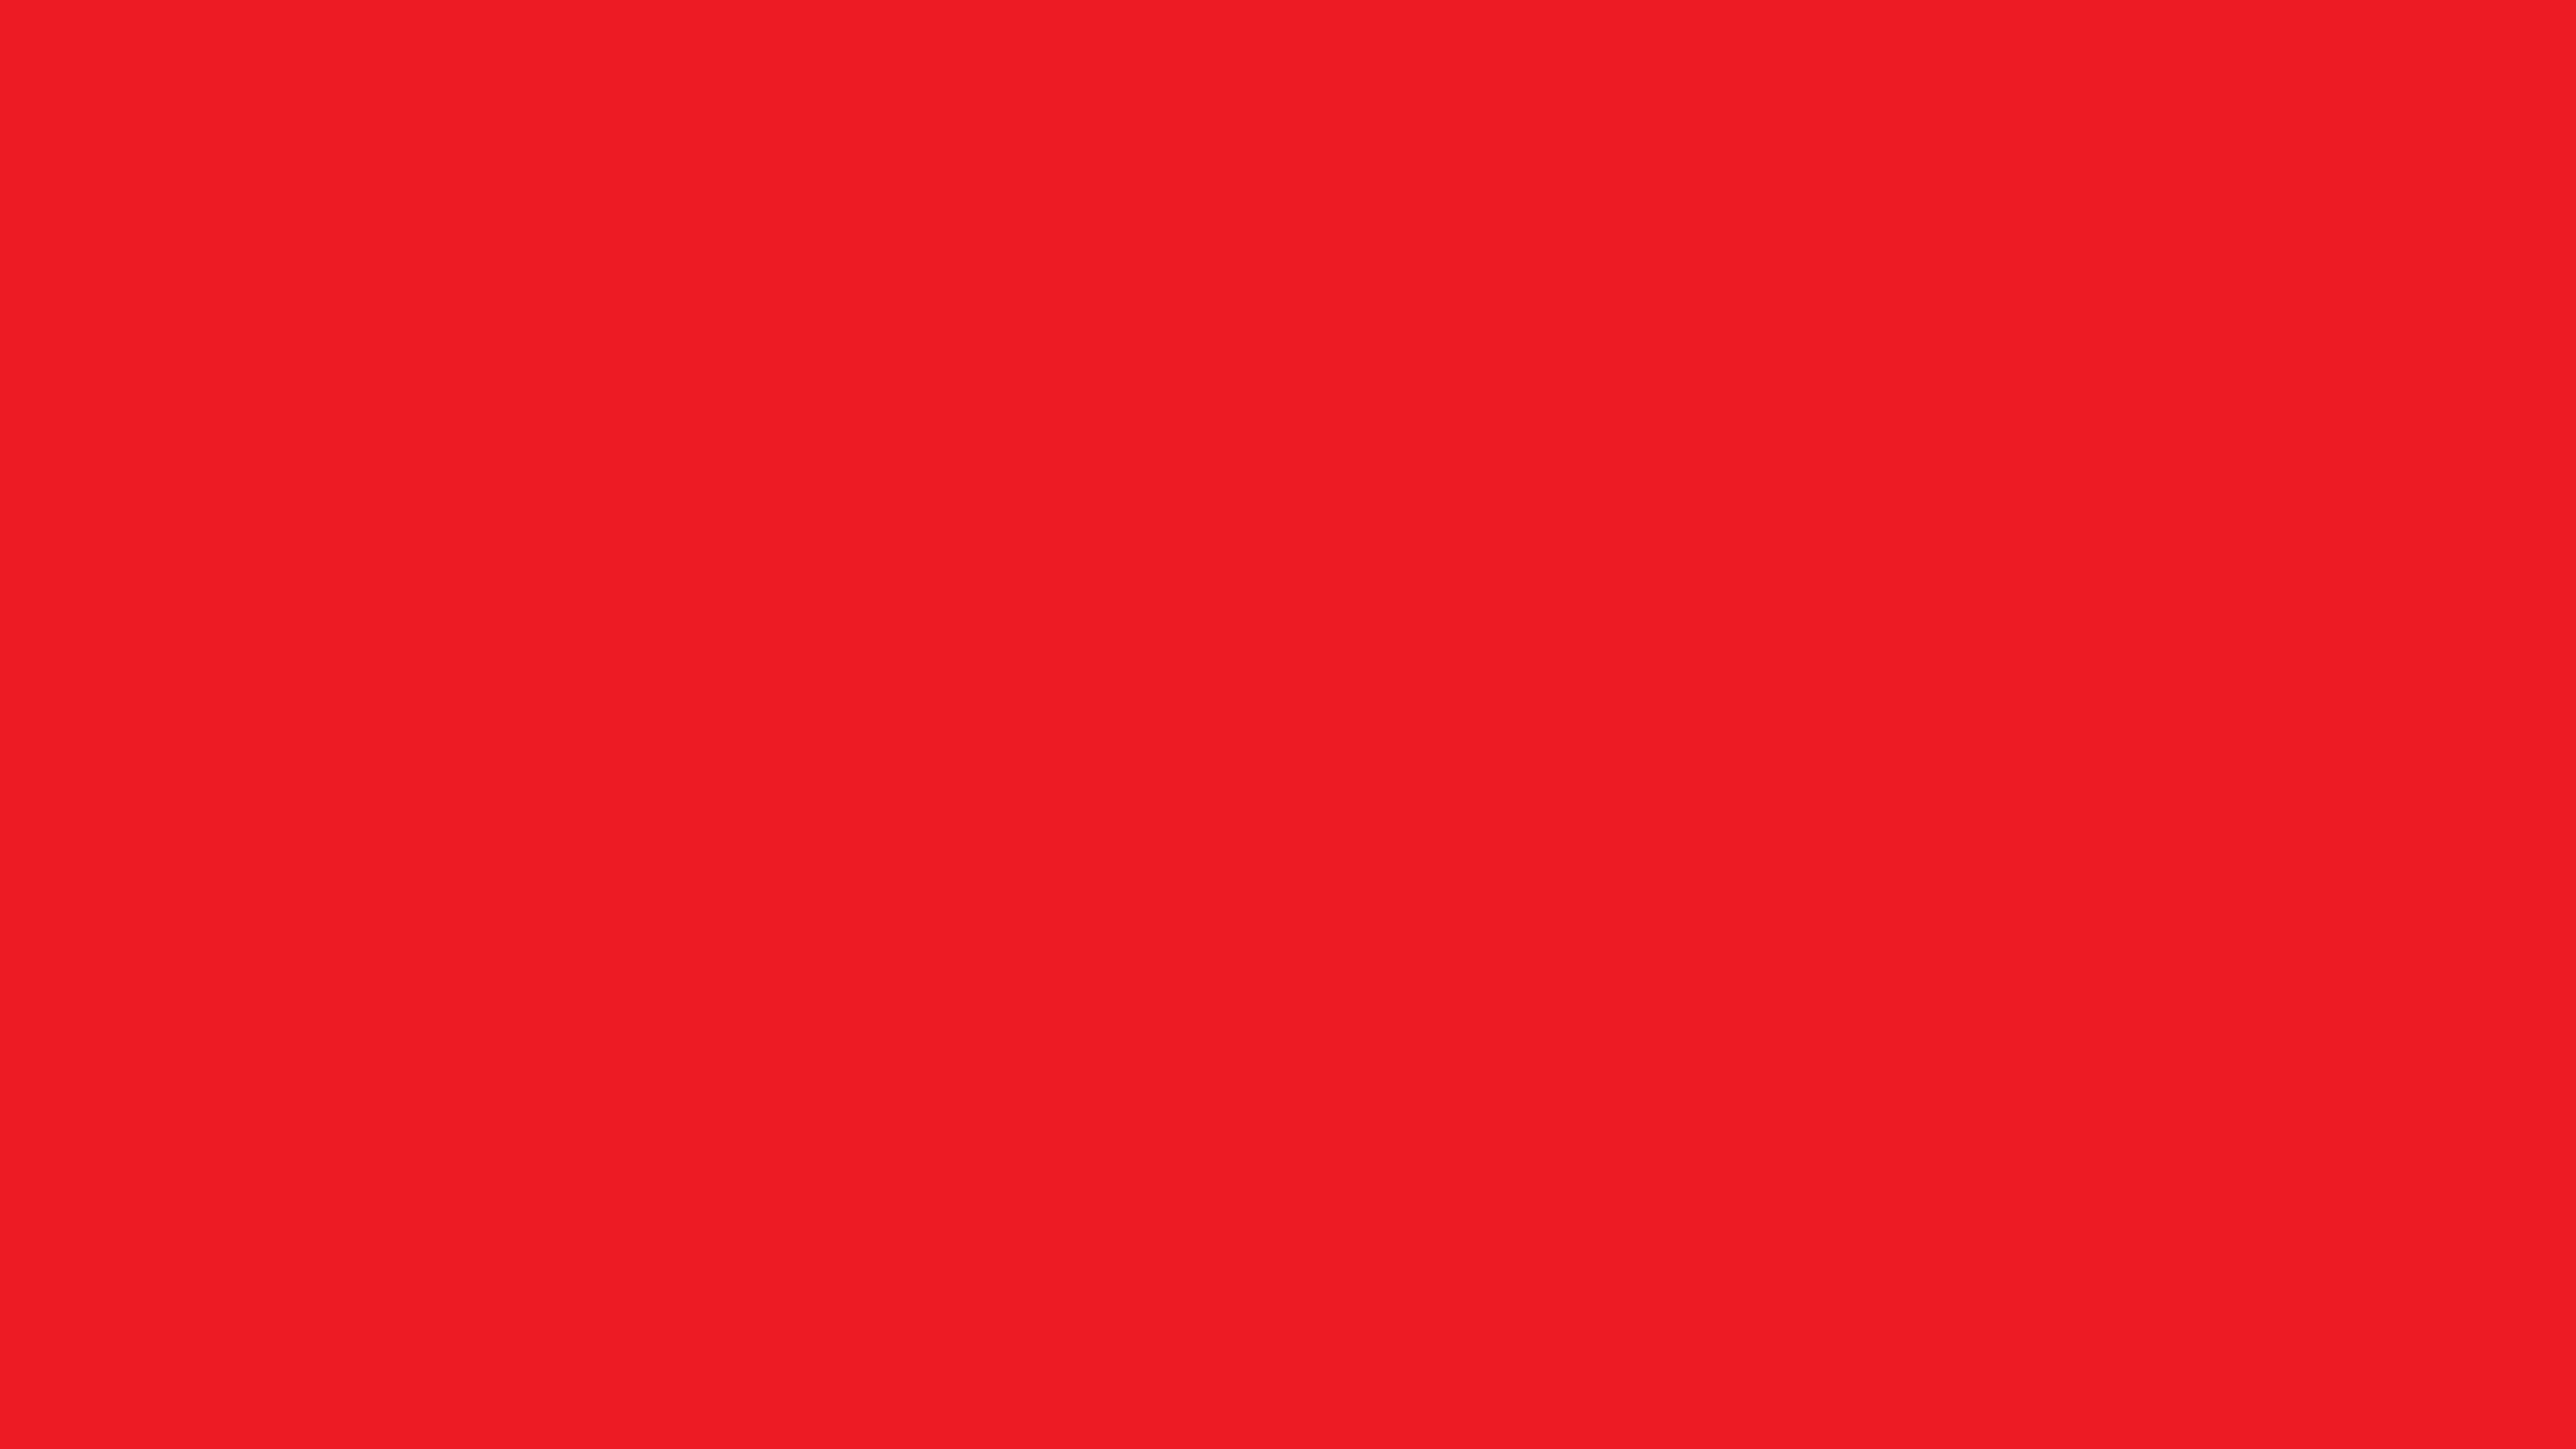 7680x4320 Red Pigment Solid Color Background